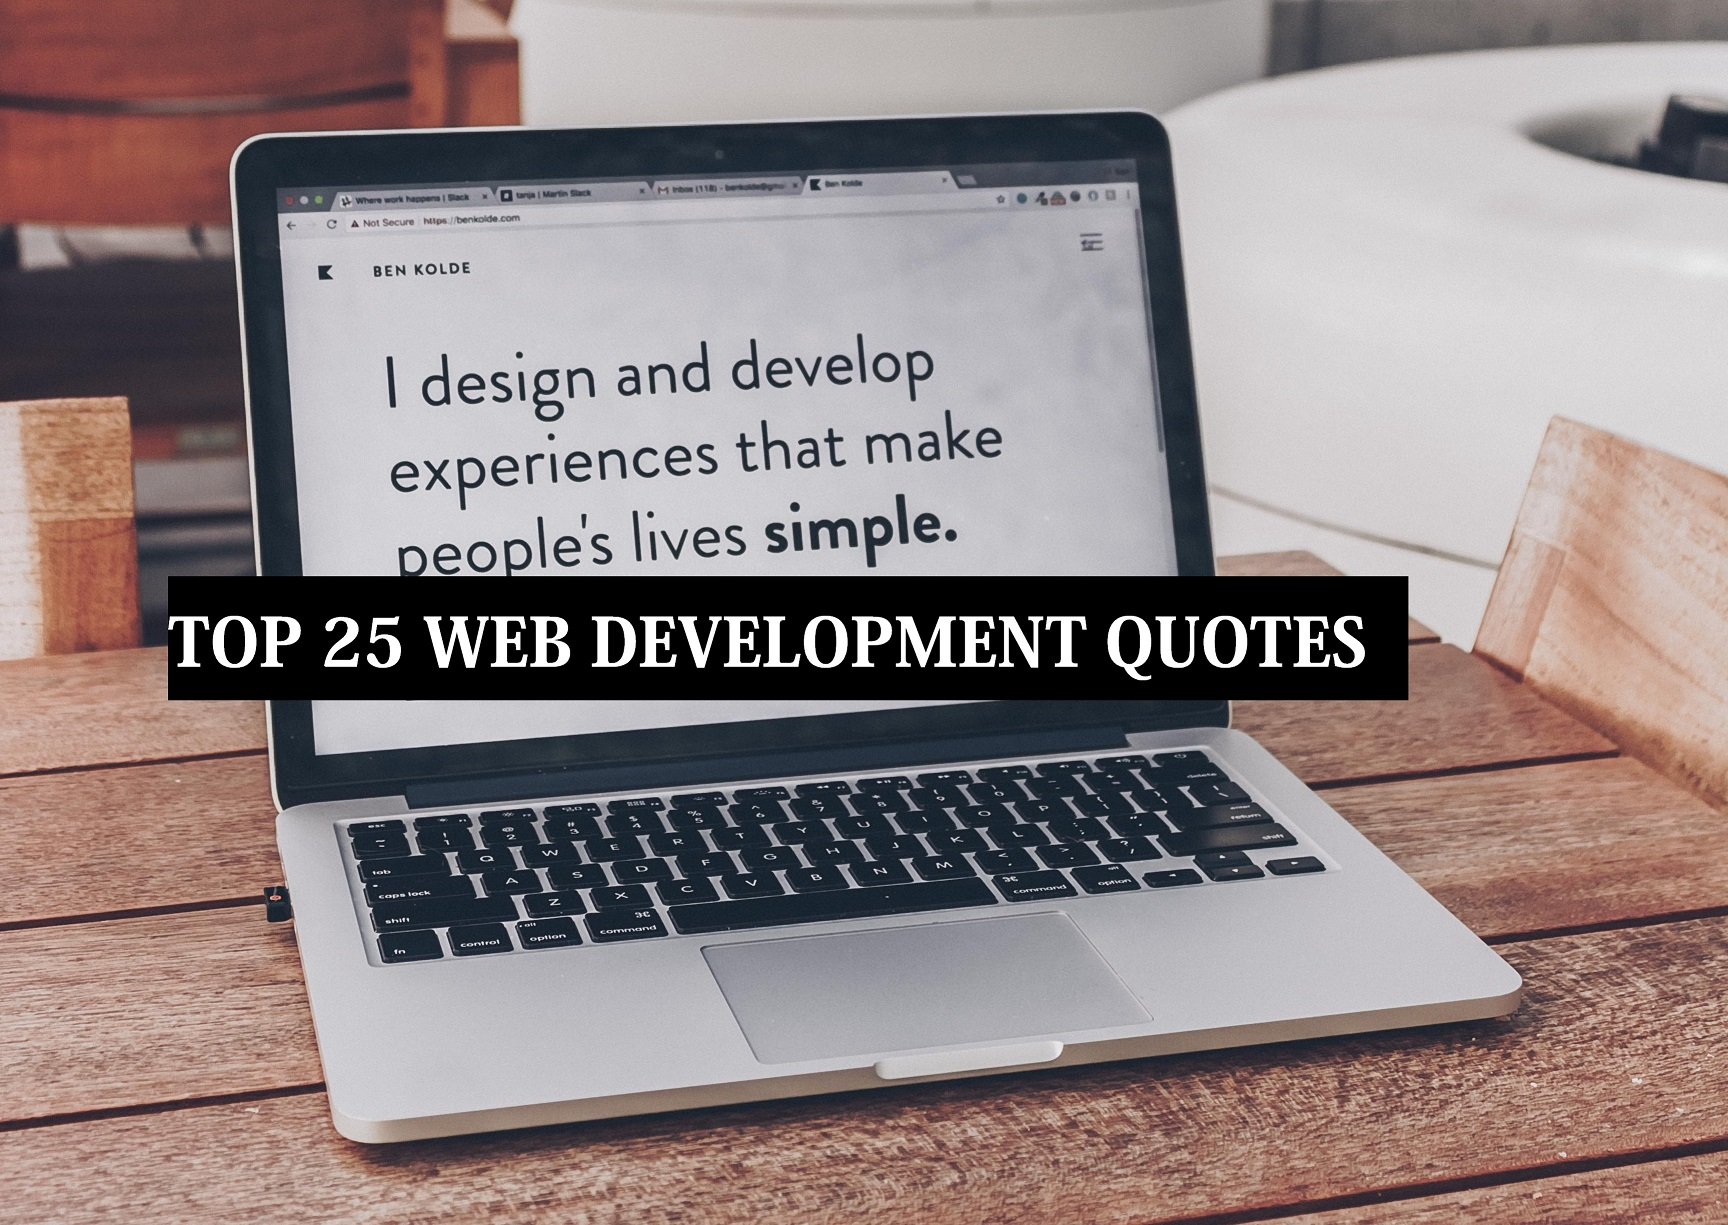 Top 25 Web Development Quotes: Inspirational and Motivational